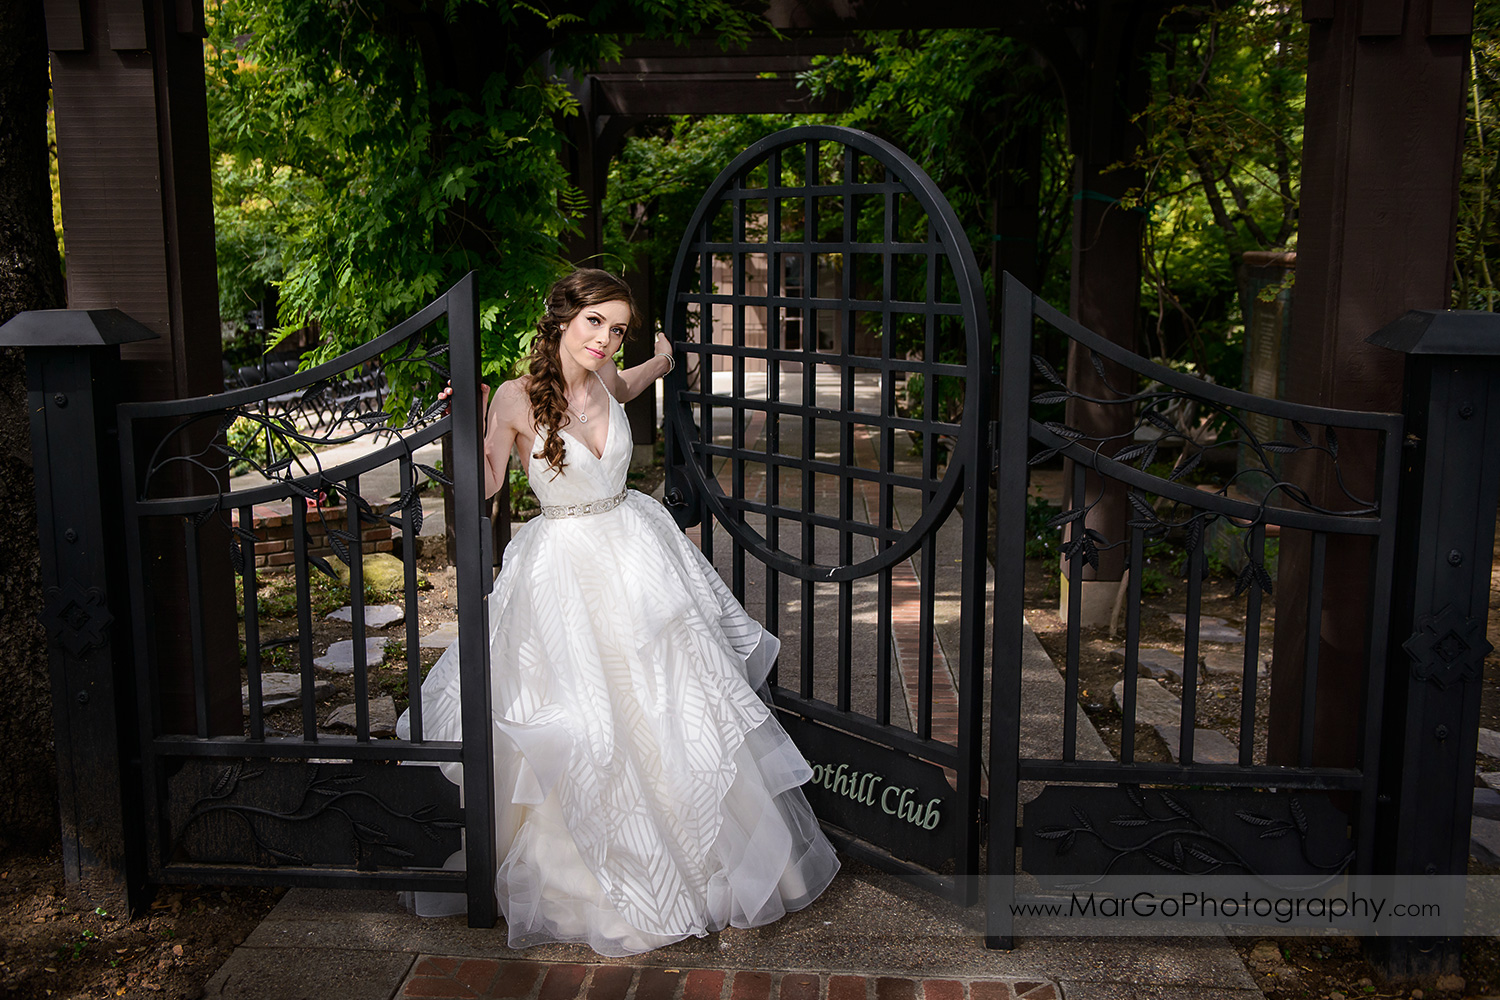 portrait of bride standing in gate at Saratoga Foothill Club